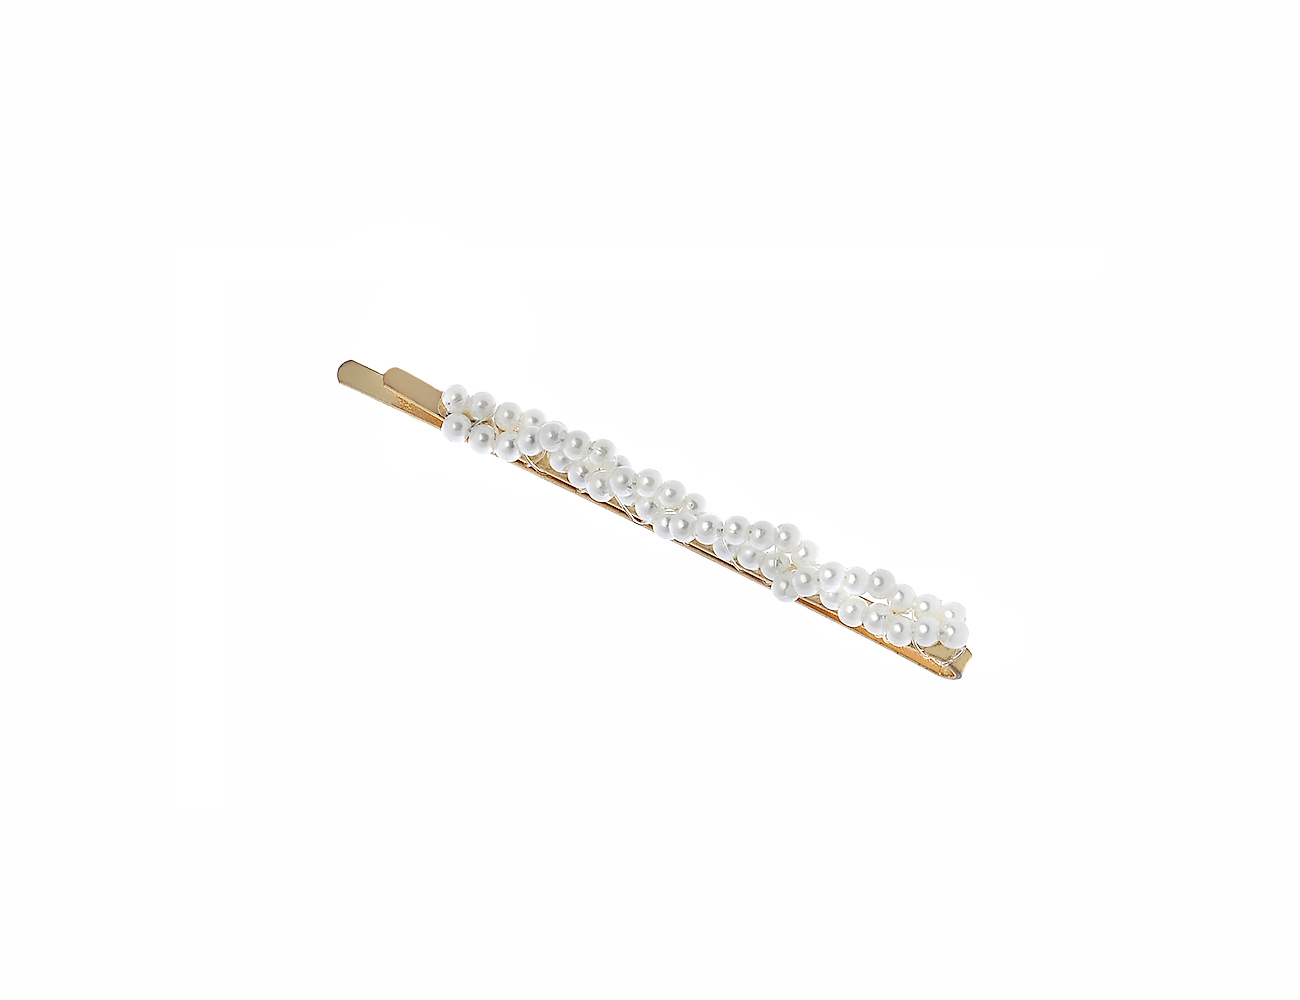 Faux pearl Hair Slide